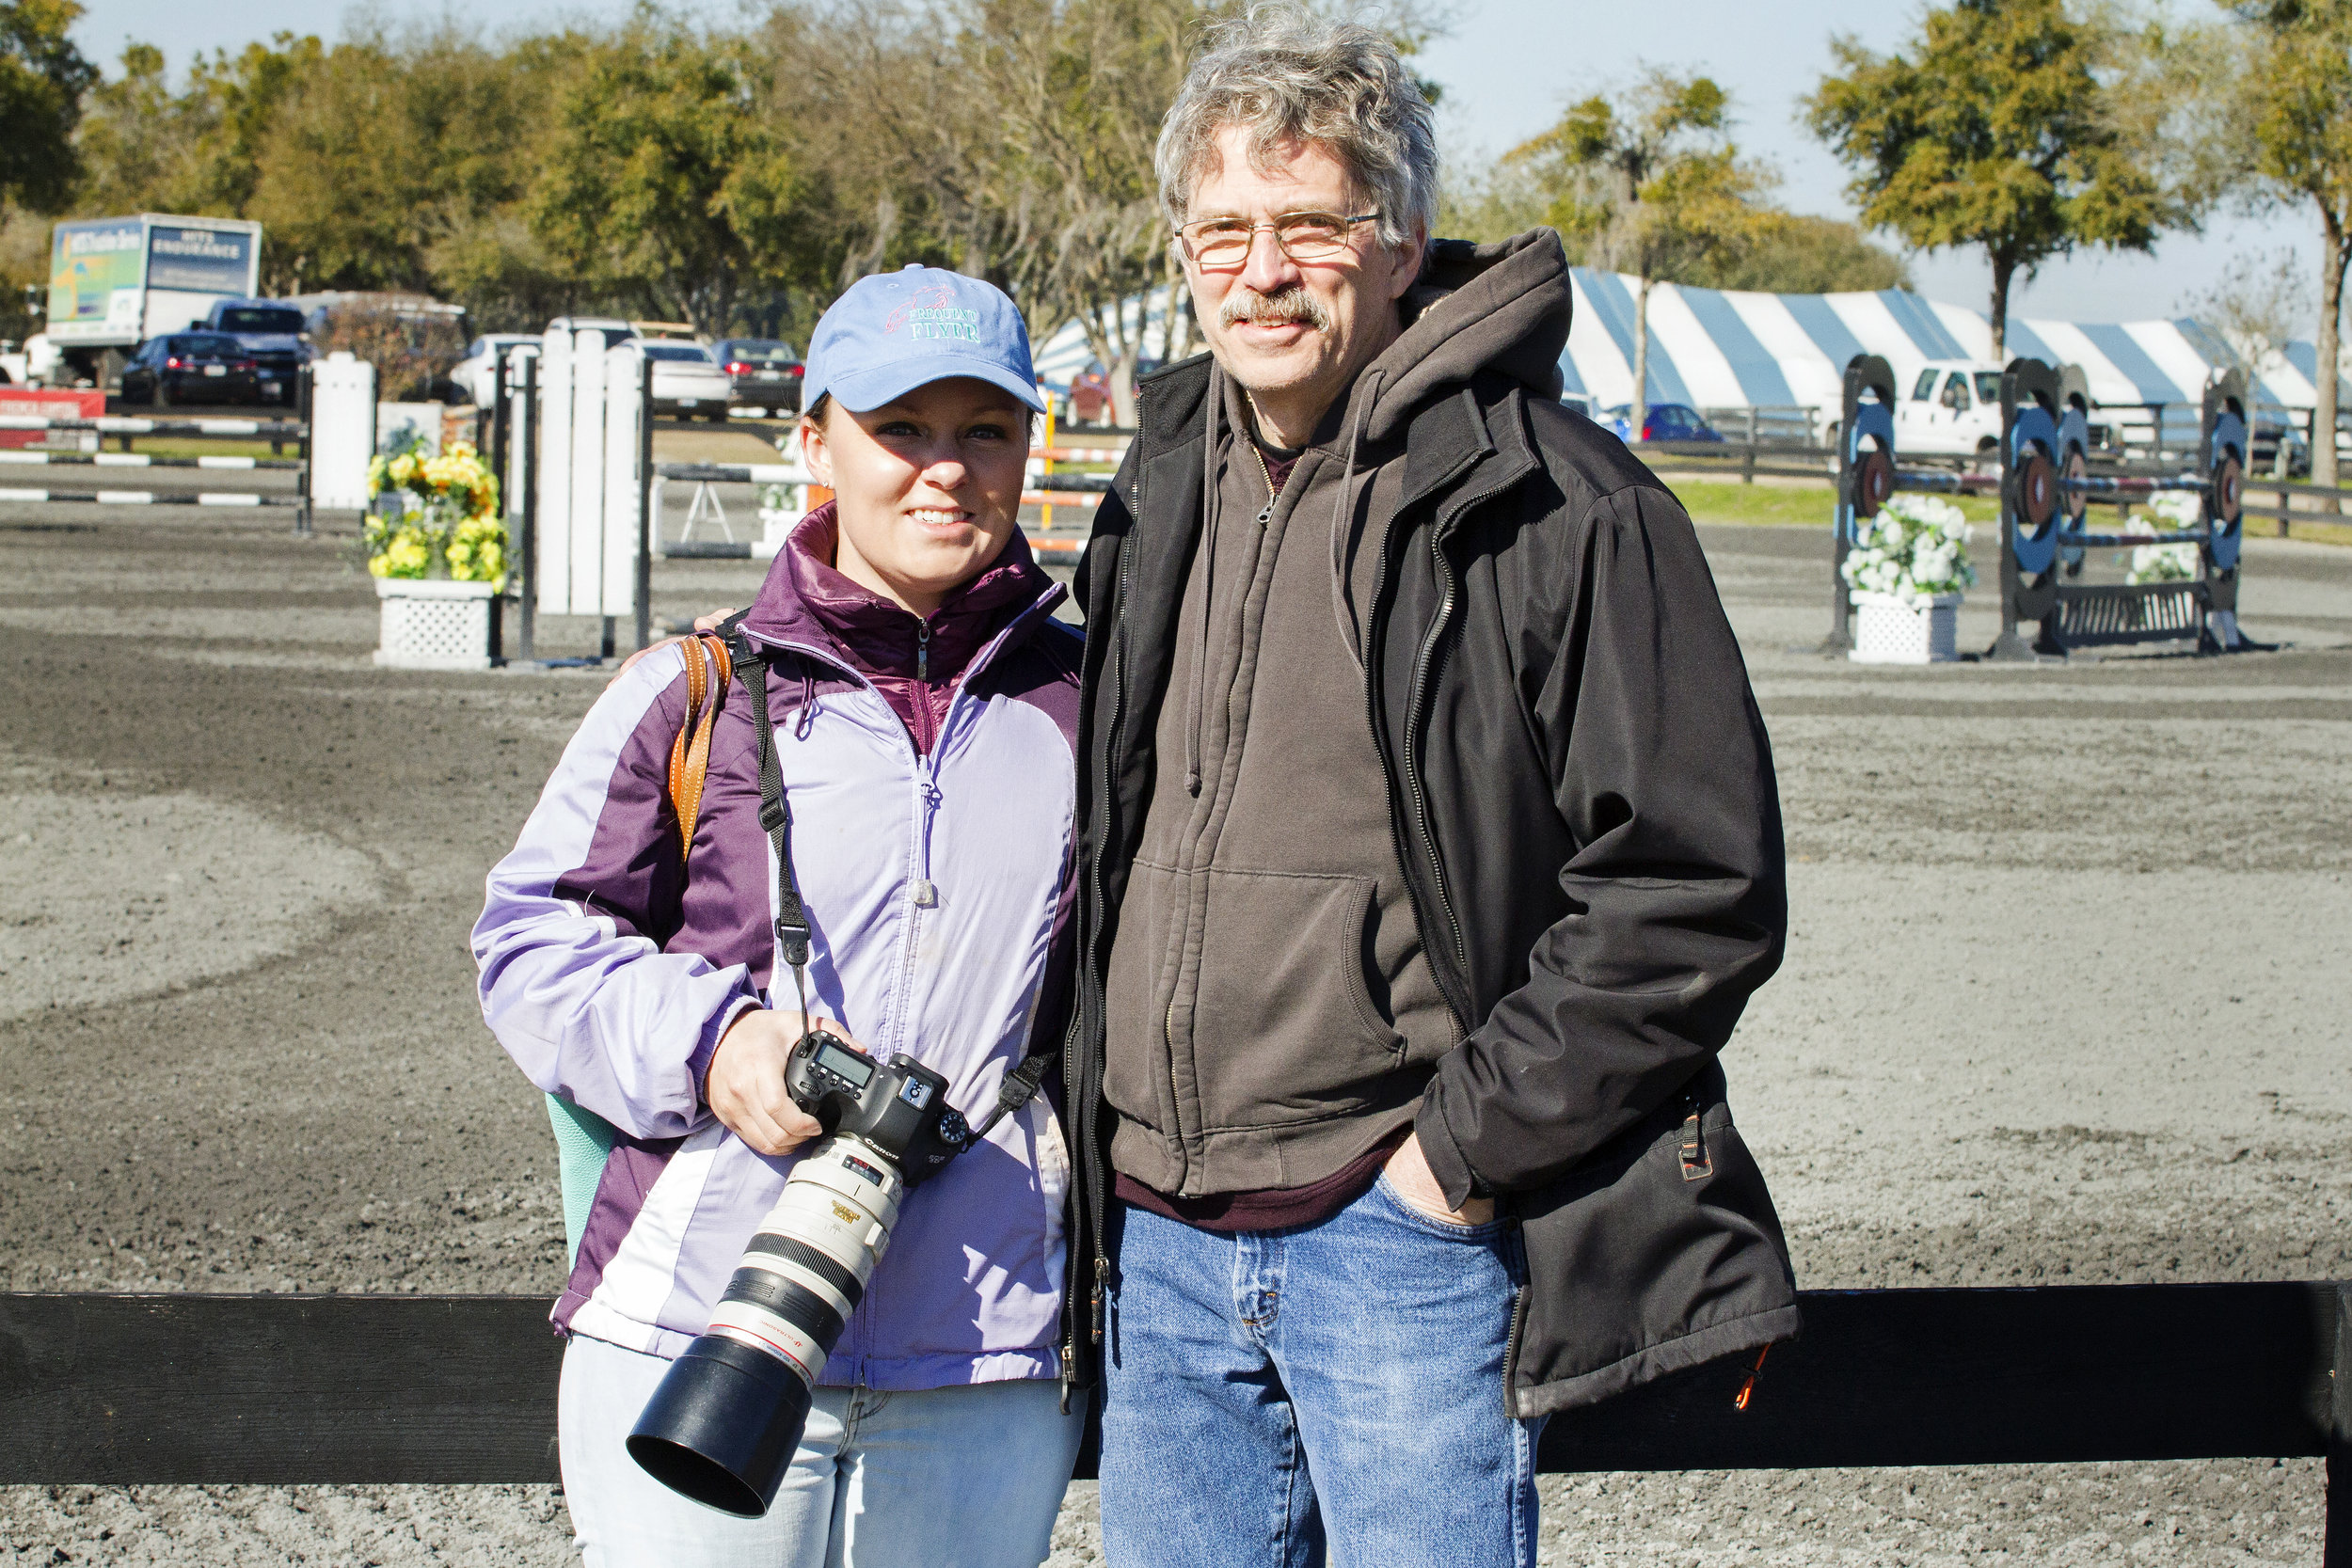 Like father, like daughter - When I started learning how to shoot, my dad would hand me his camera at horse shows. Years later, I take him out to shows and let him play with the fancy new digital cameras.